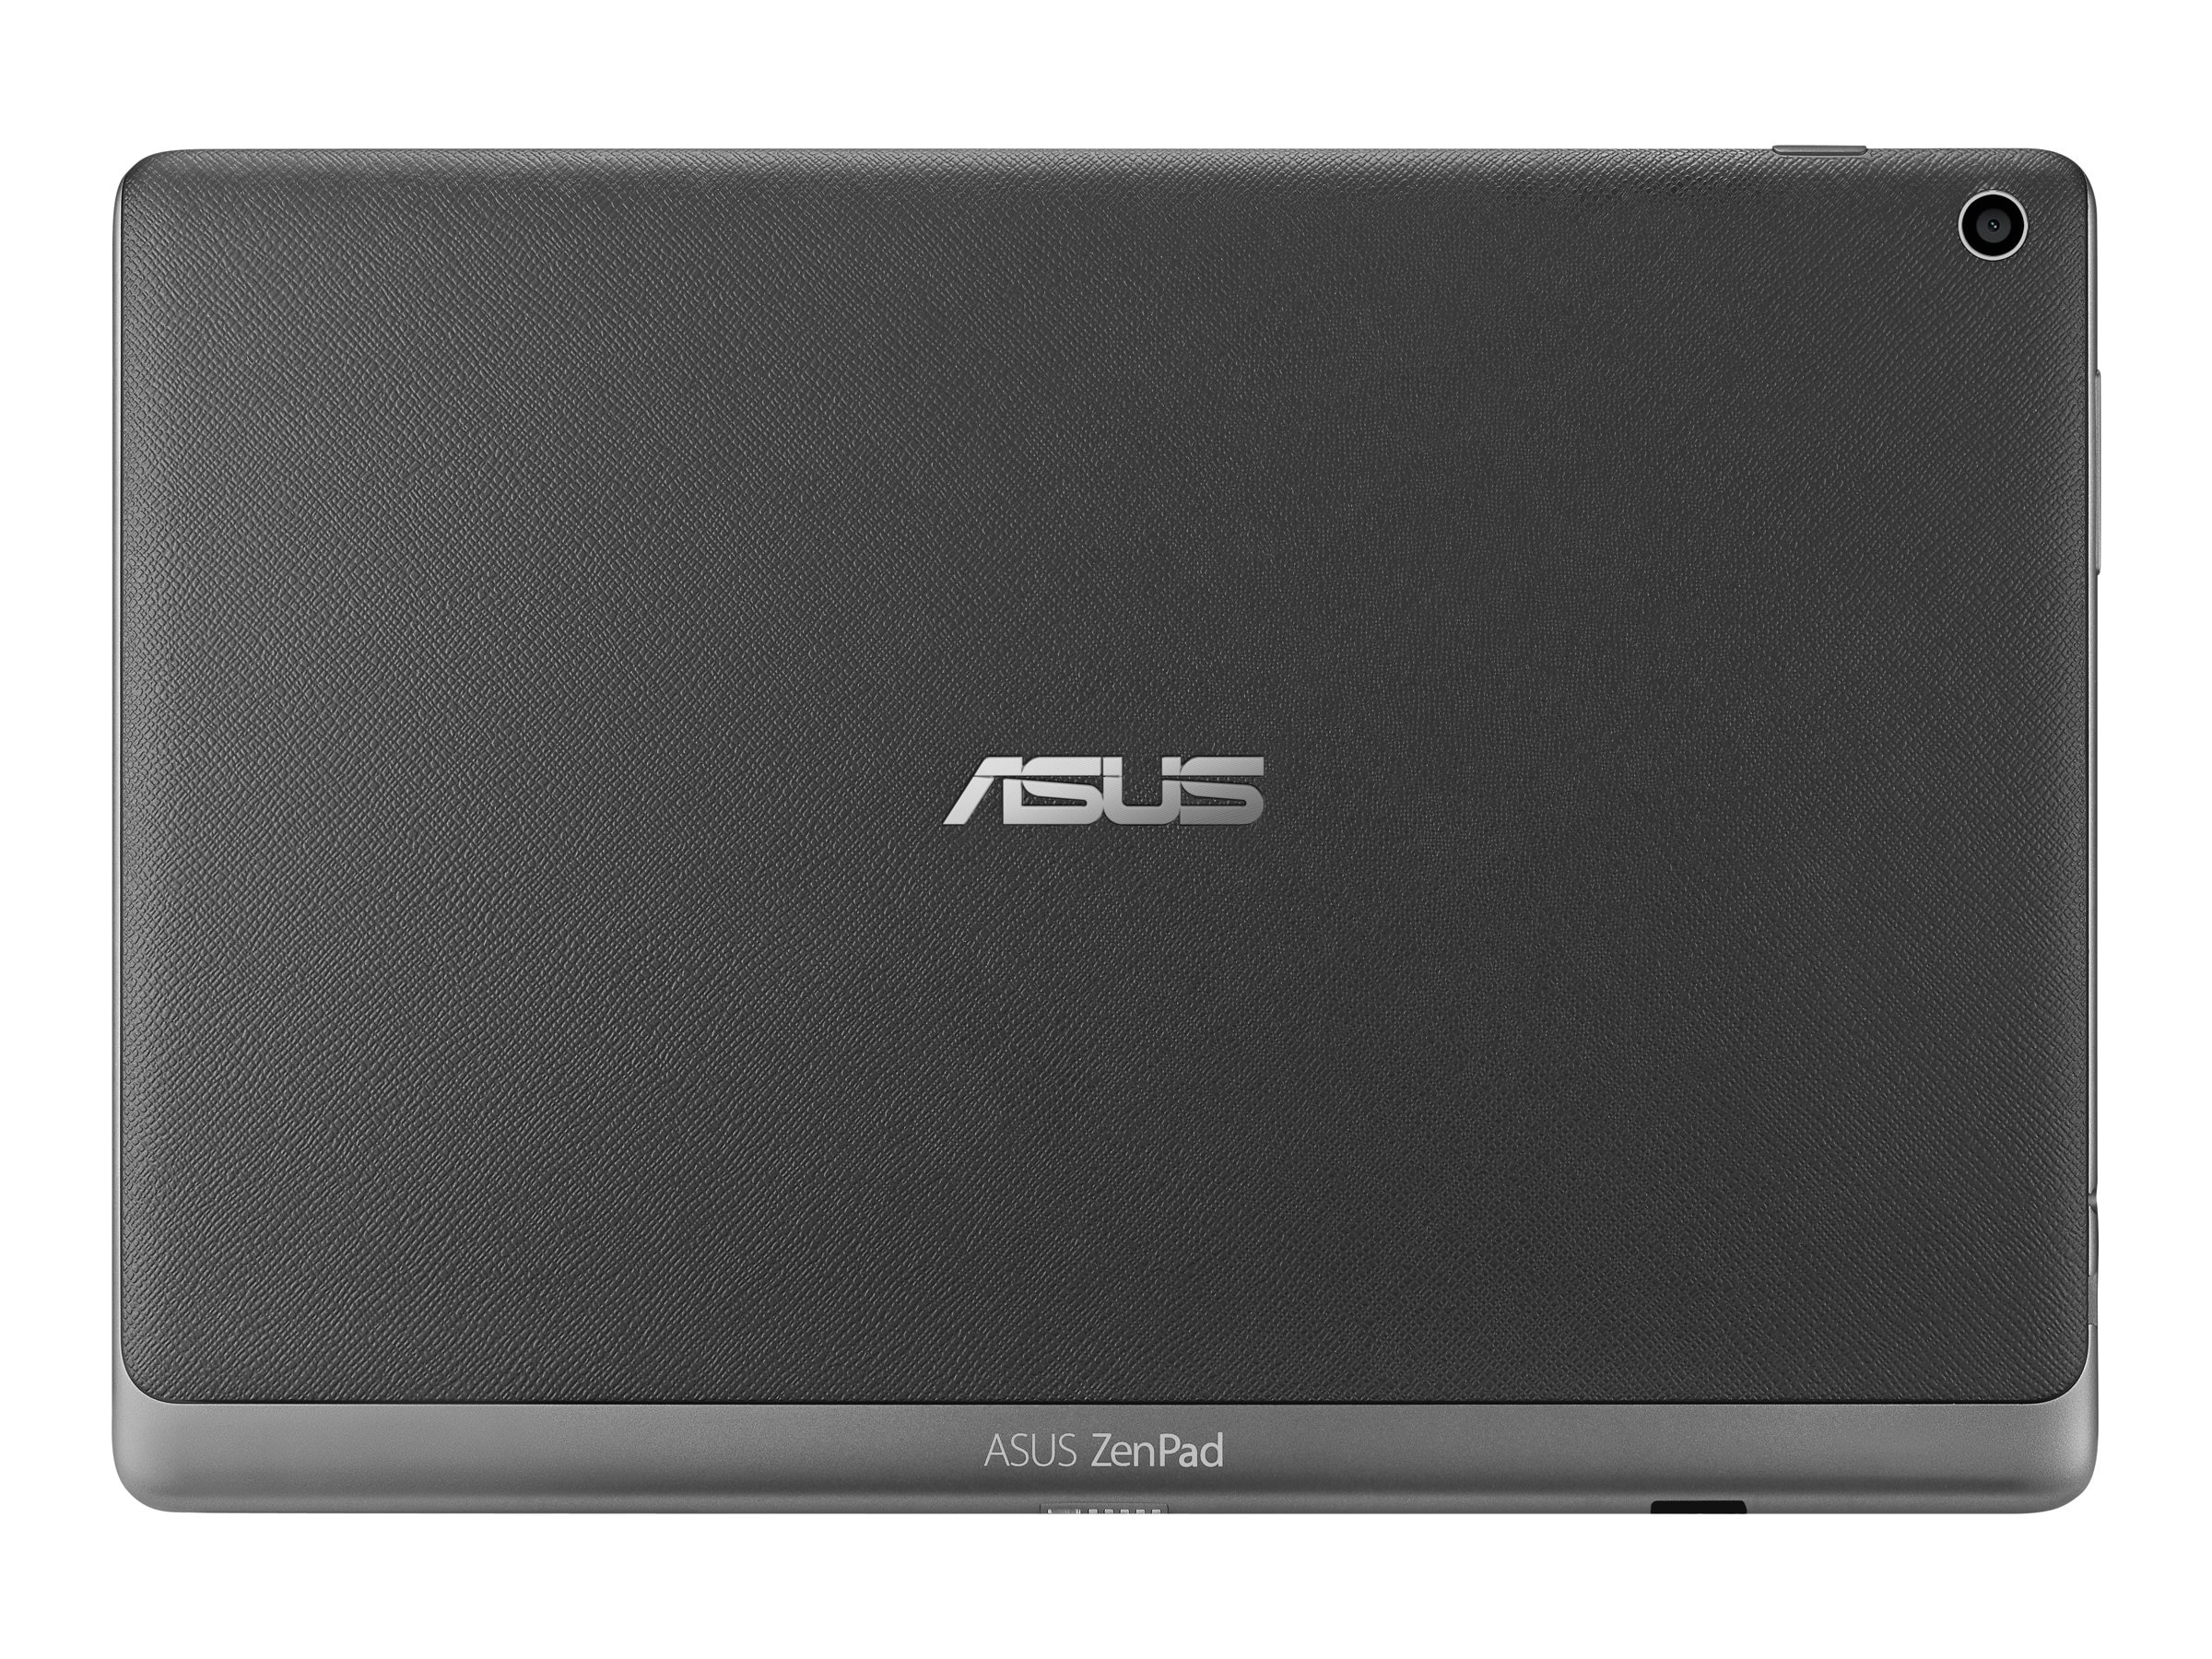 Asus ZenPad Z300M-A2-GR MTK 8163 2GB 16GB 2xWC 10 WSVGA MT Android 6.0, Z300M-A2-GR